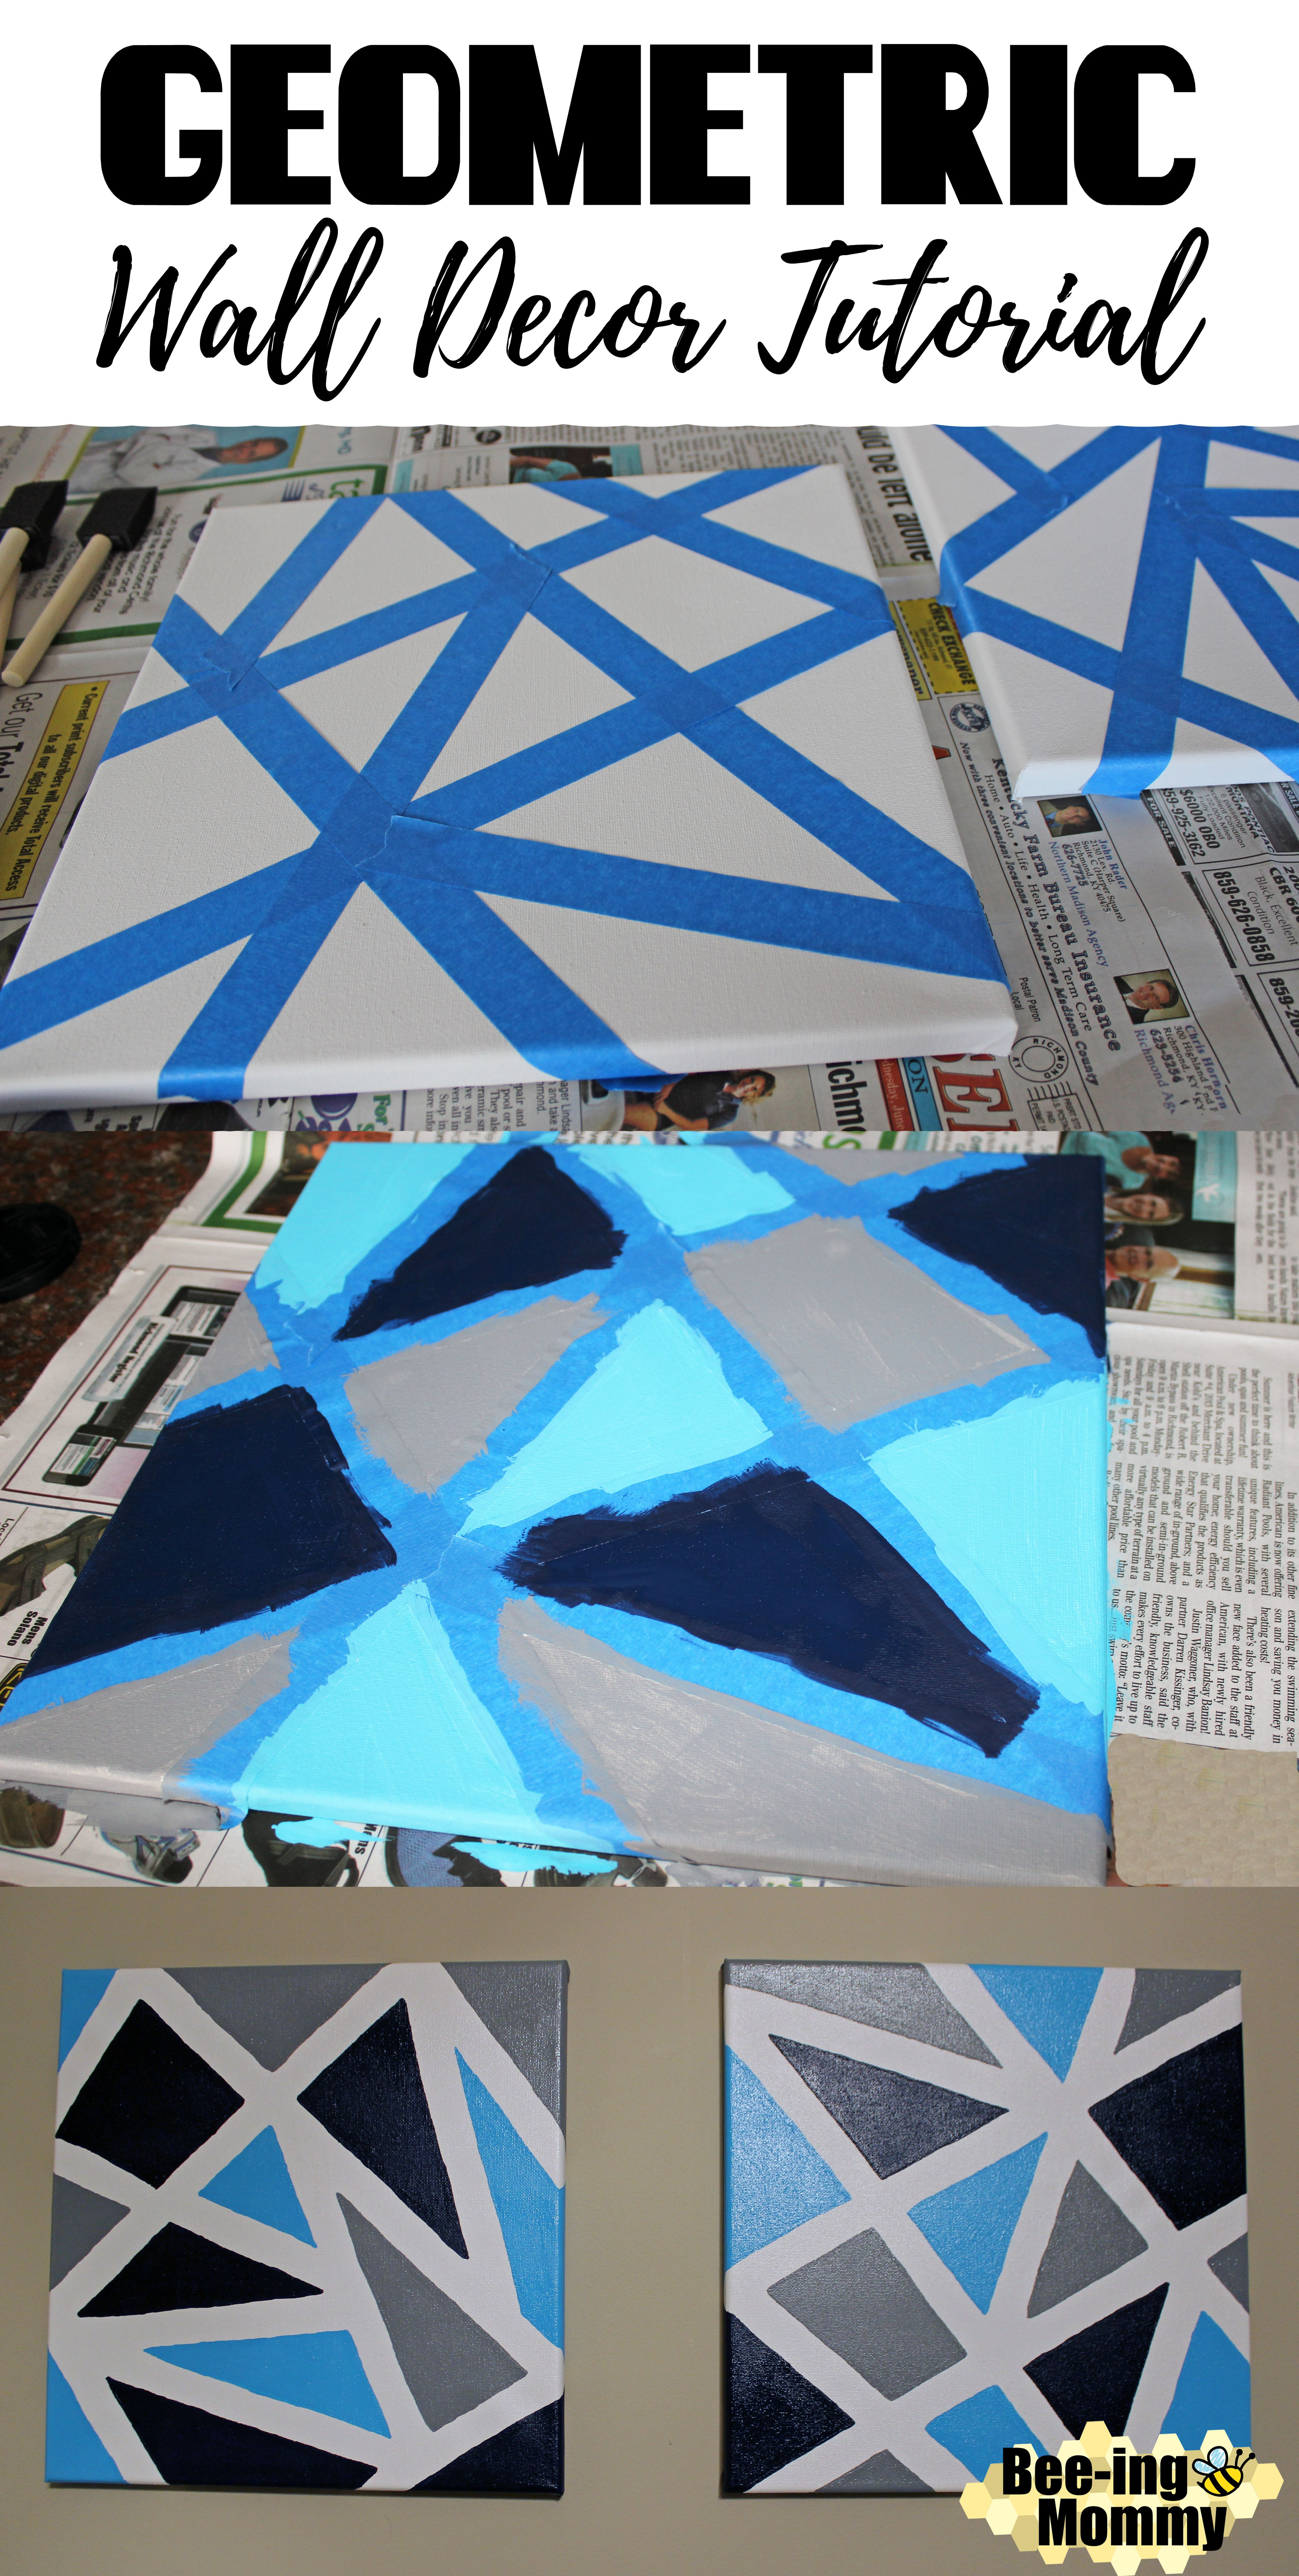 Geometric Wall Decor using Painters Tape